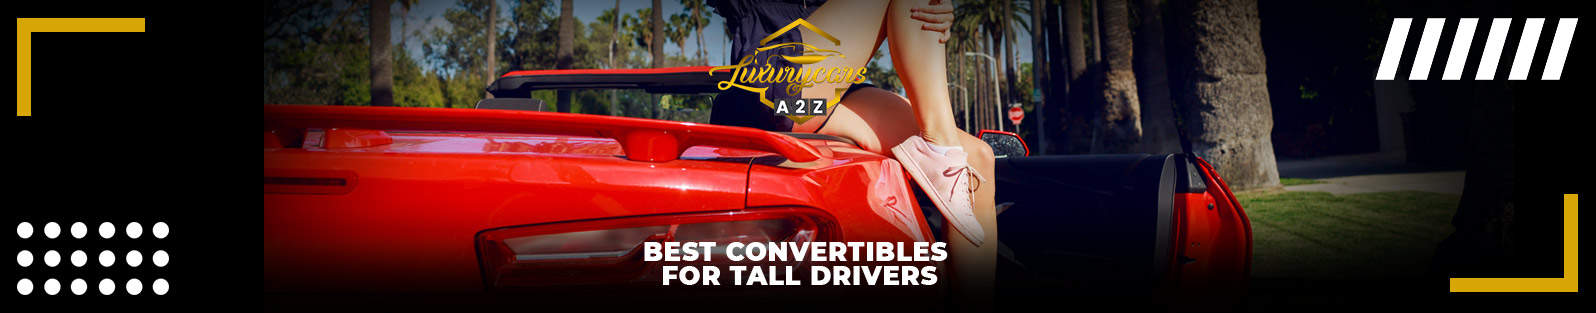 Best convertibles for tall drivers